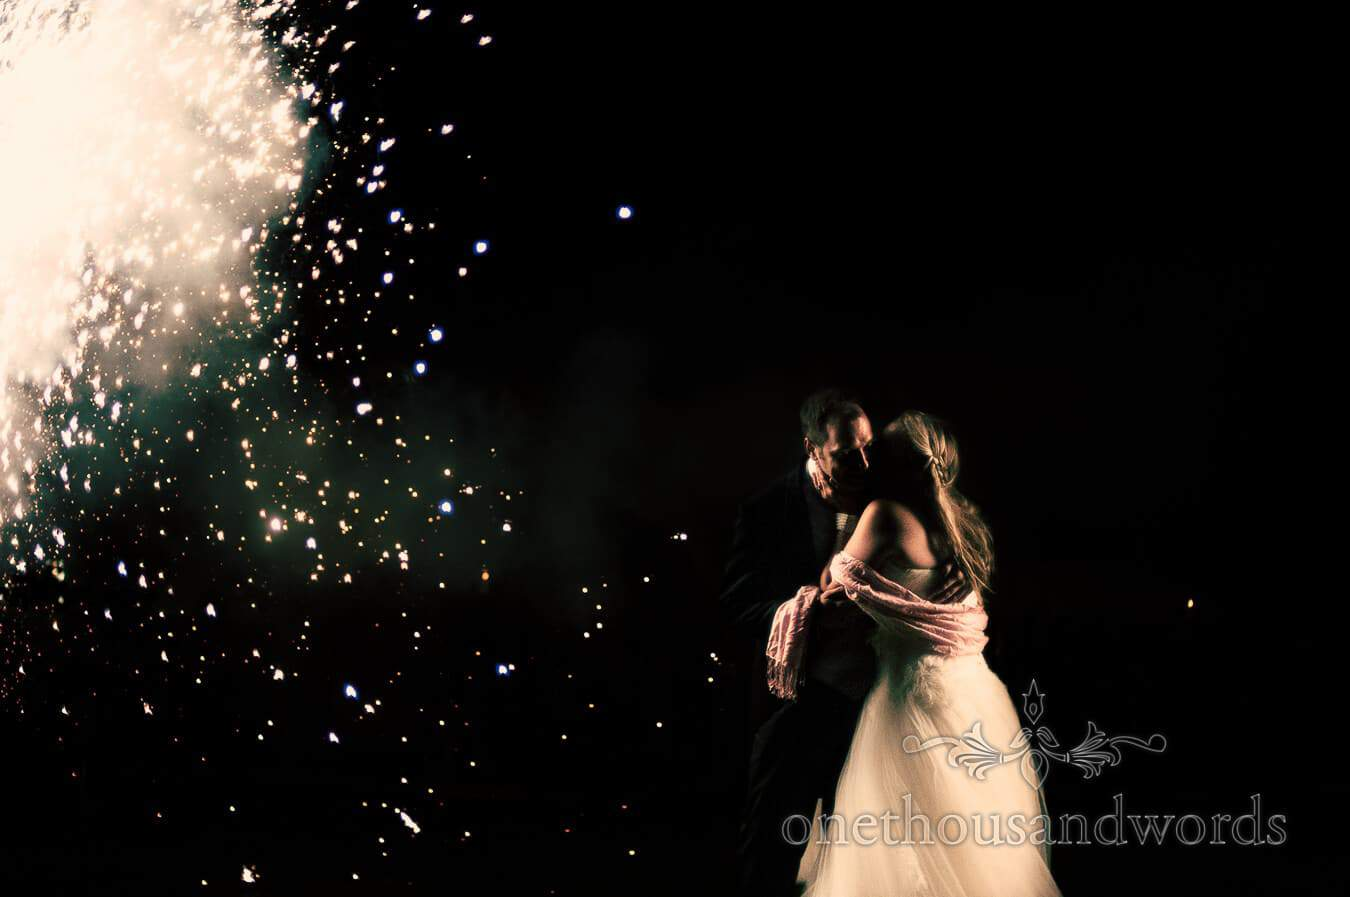 Bride and groom with wedding fireworks wedding photograph